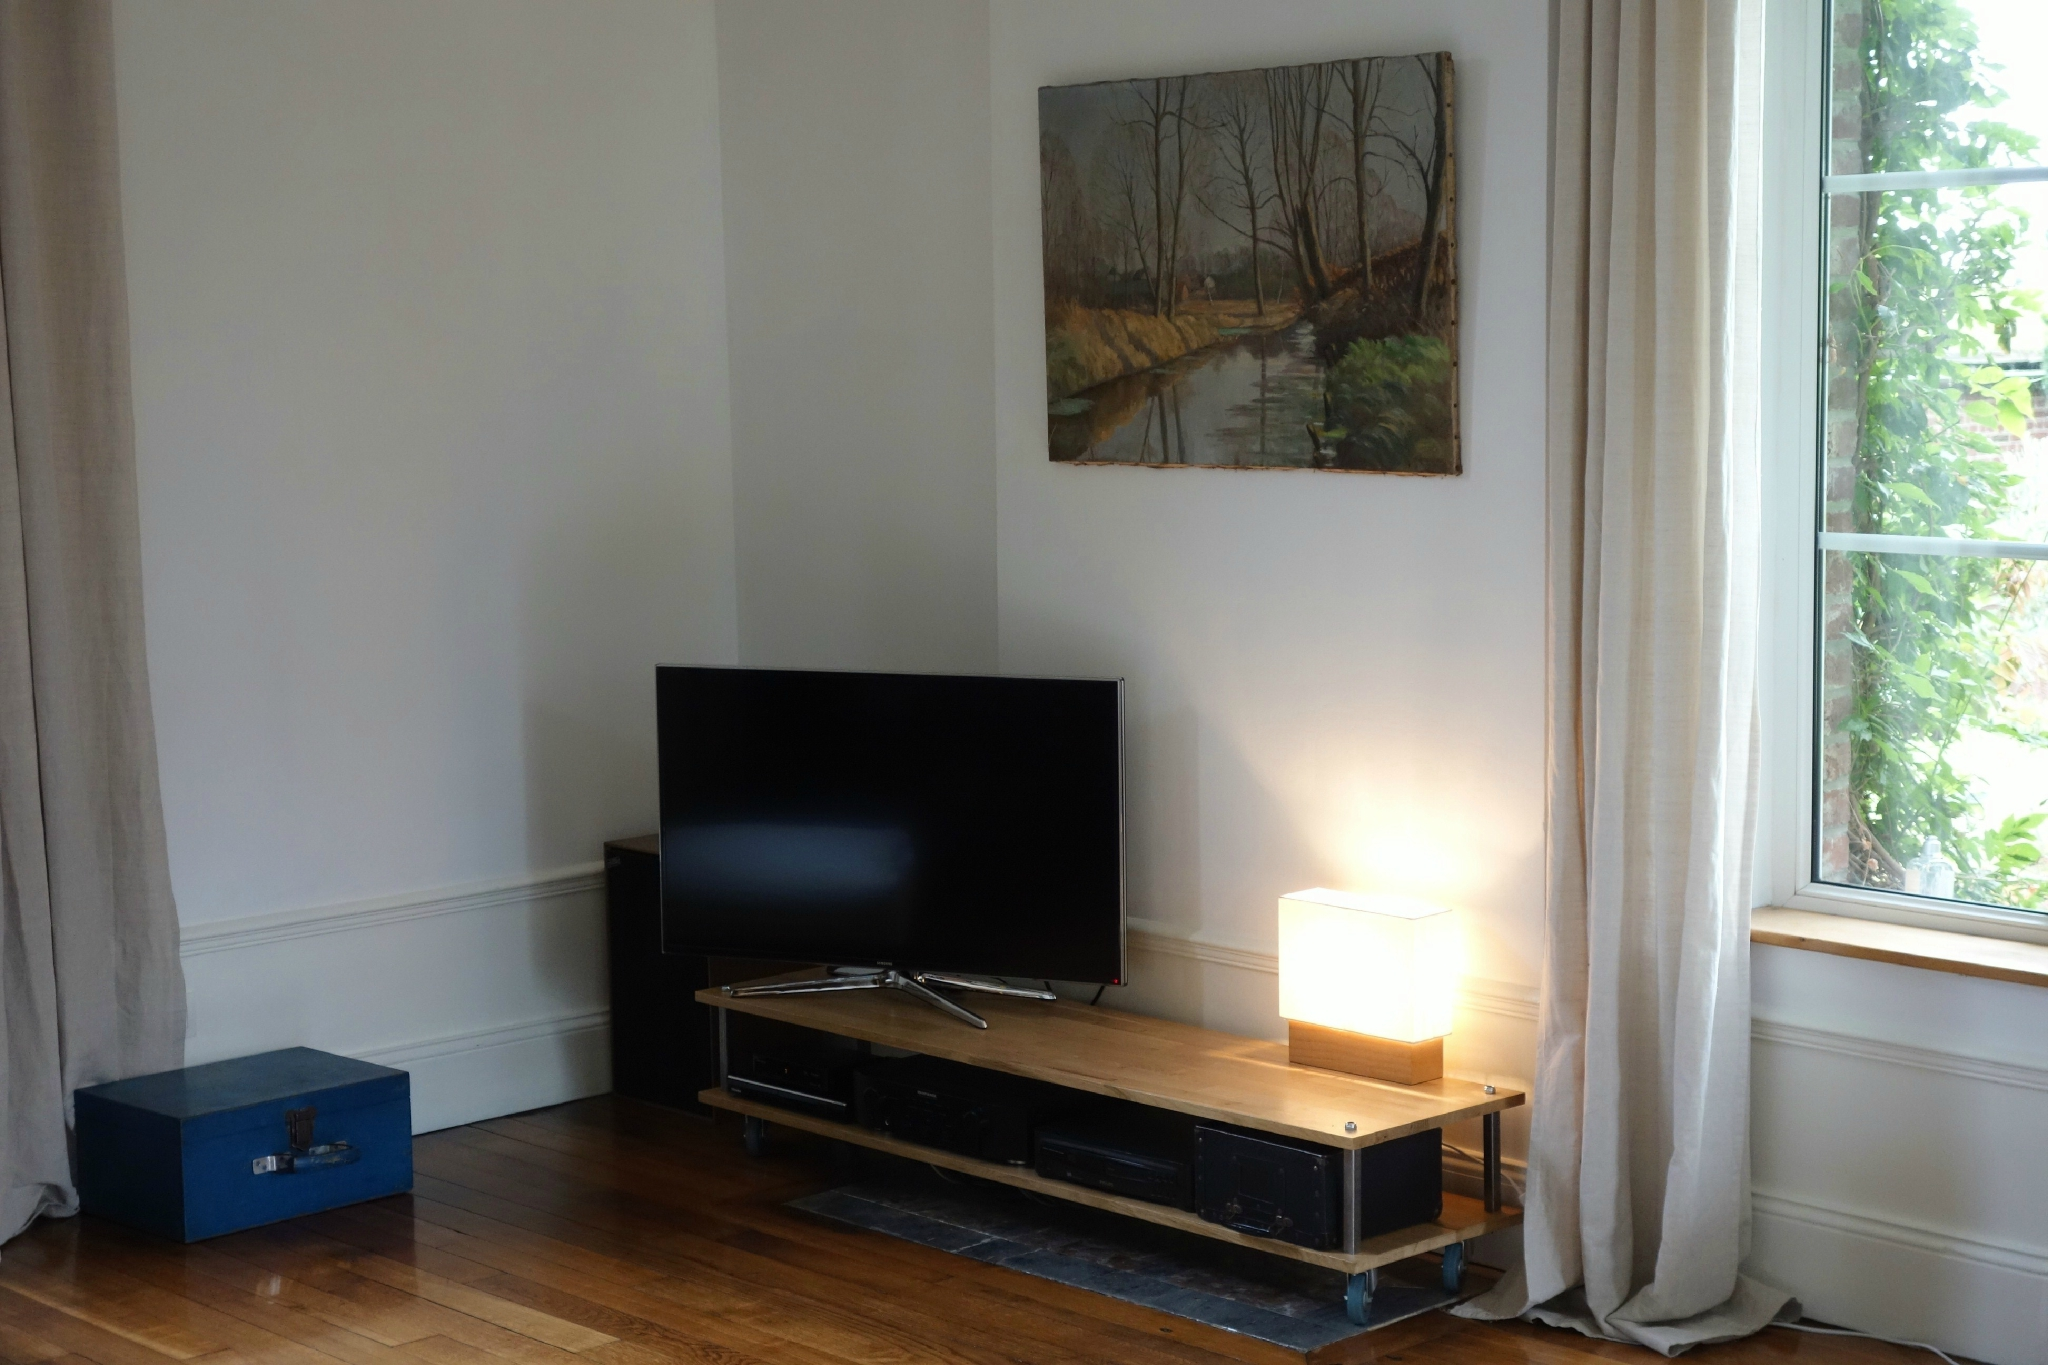 Brocolis bricolons un meuble tv ou une table basse for Meuble tv 1m